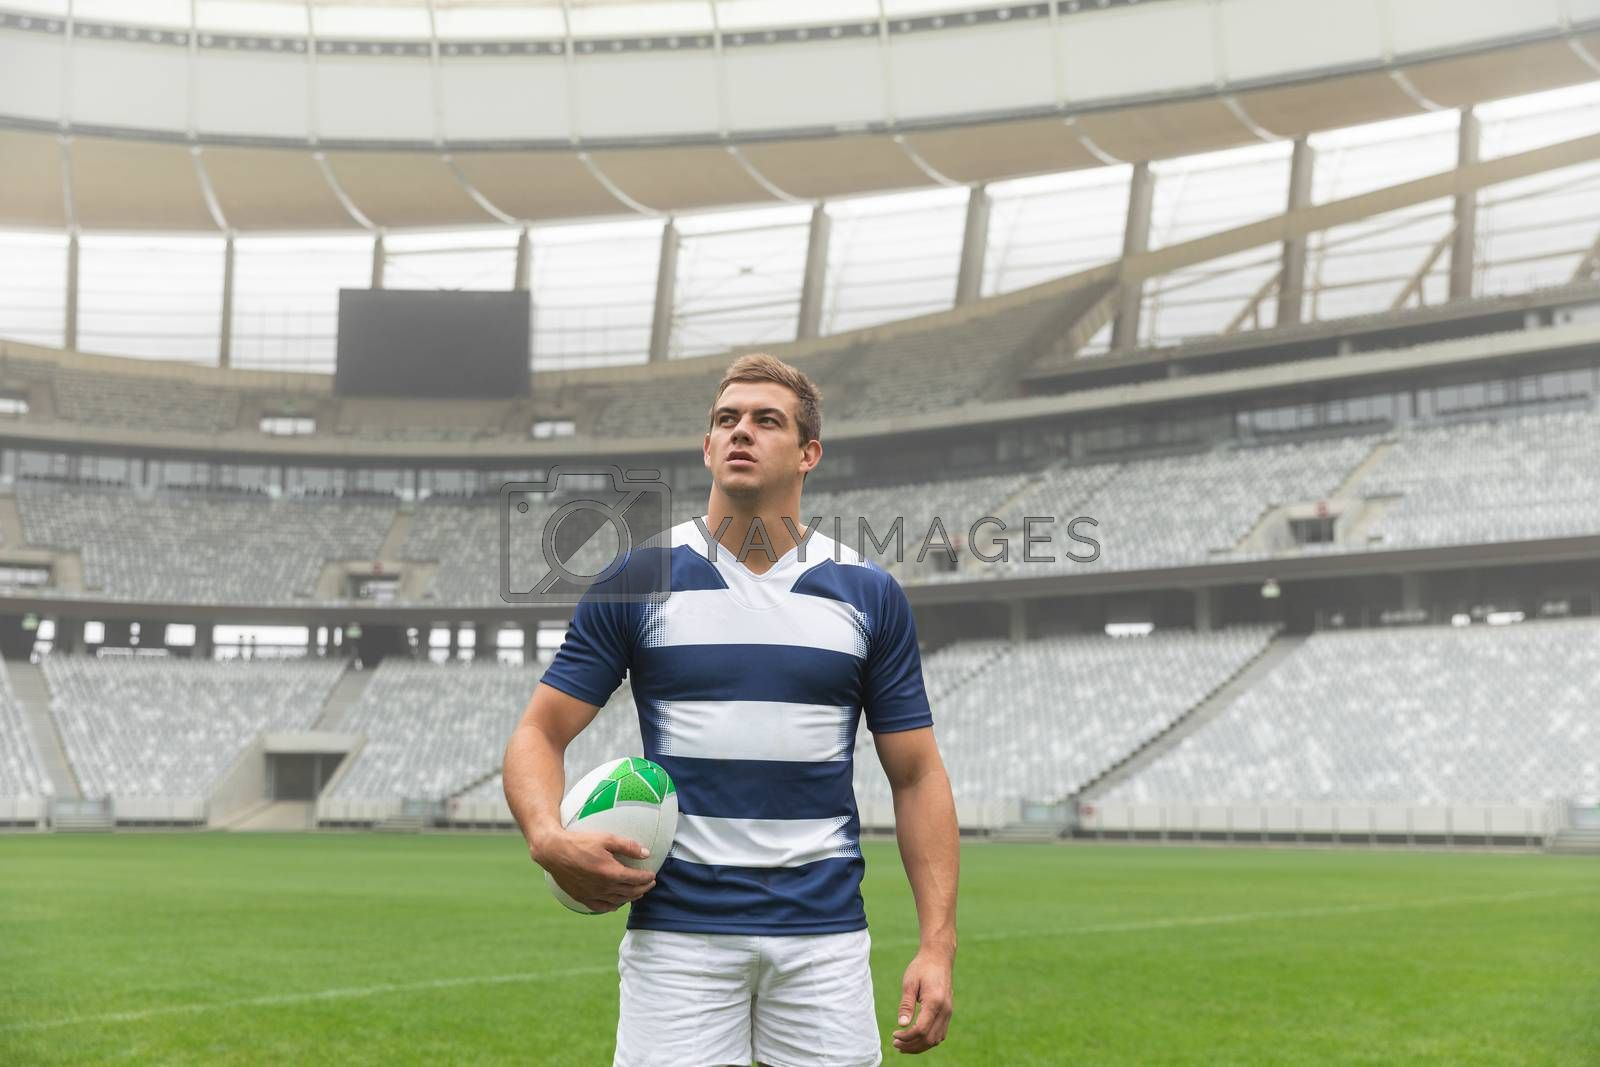 Front view of thoughtful Caucasian rugby player standing with rugby ball in stadium